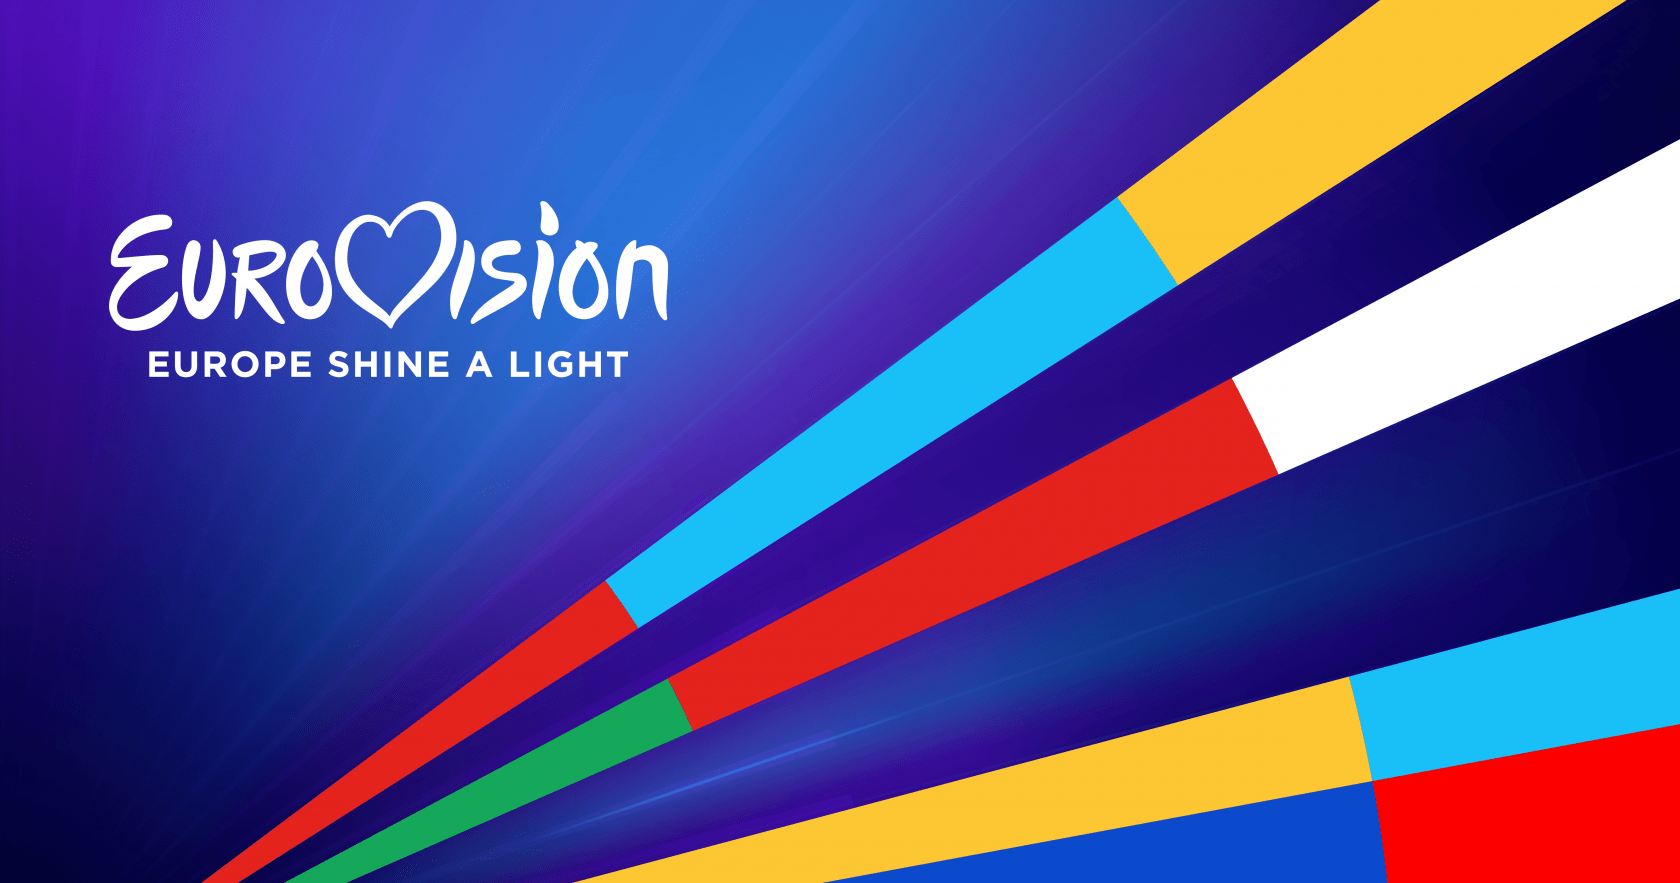 Eurovision: Europe Shine a Light